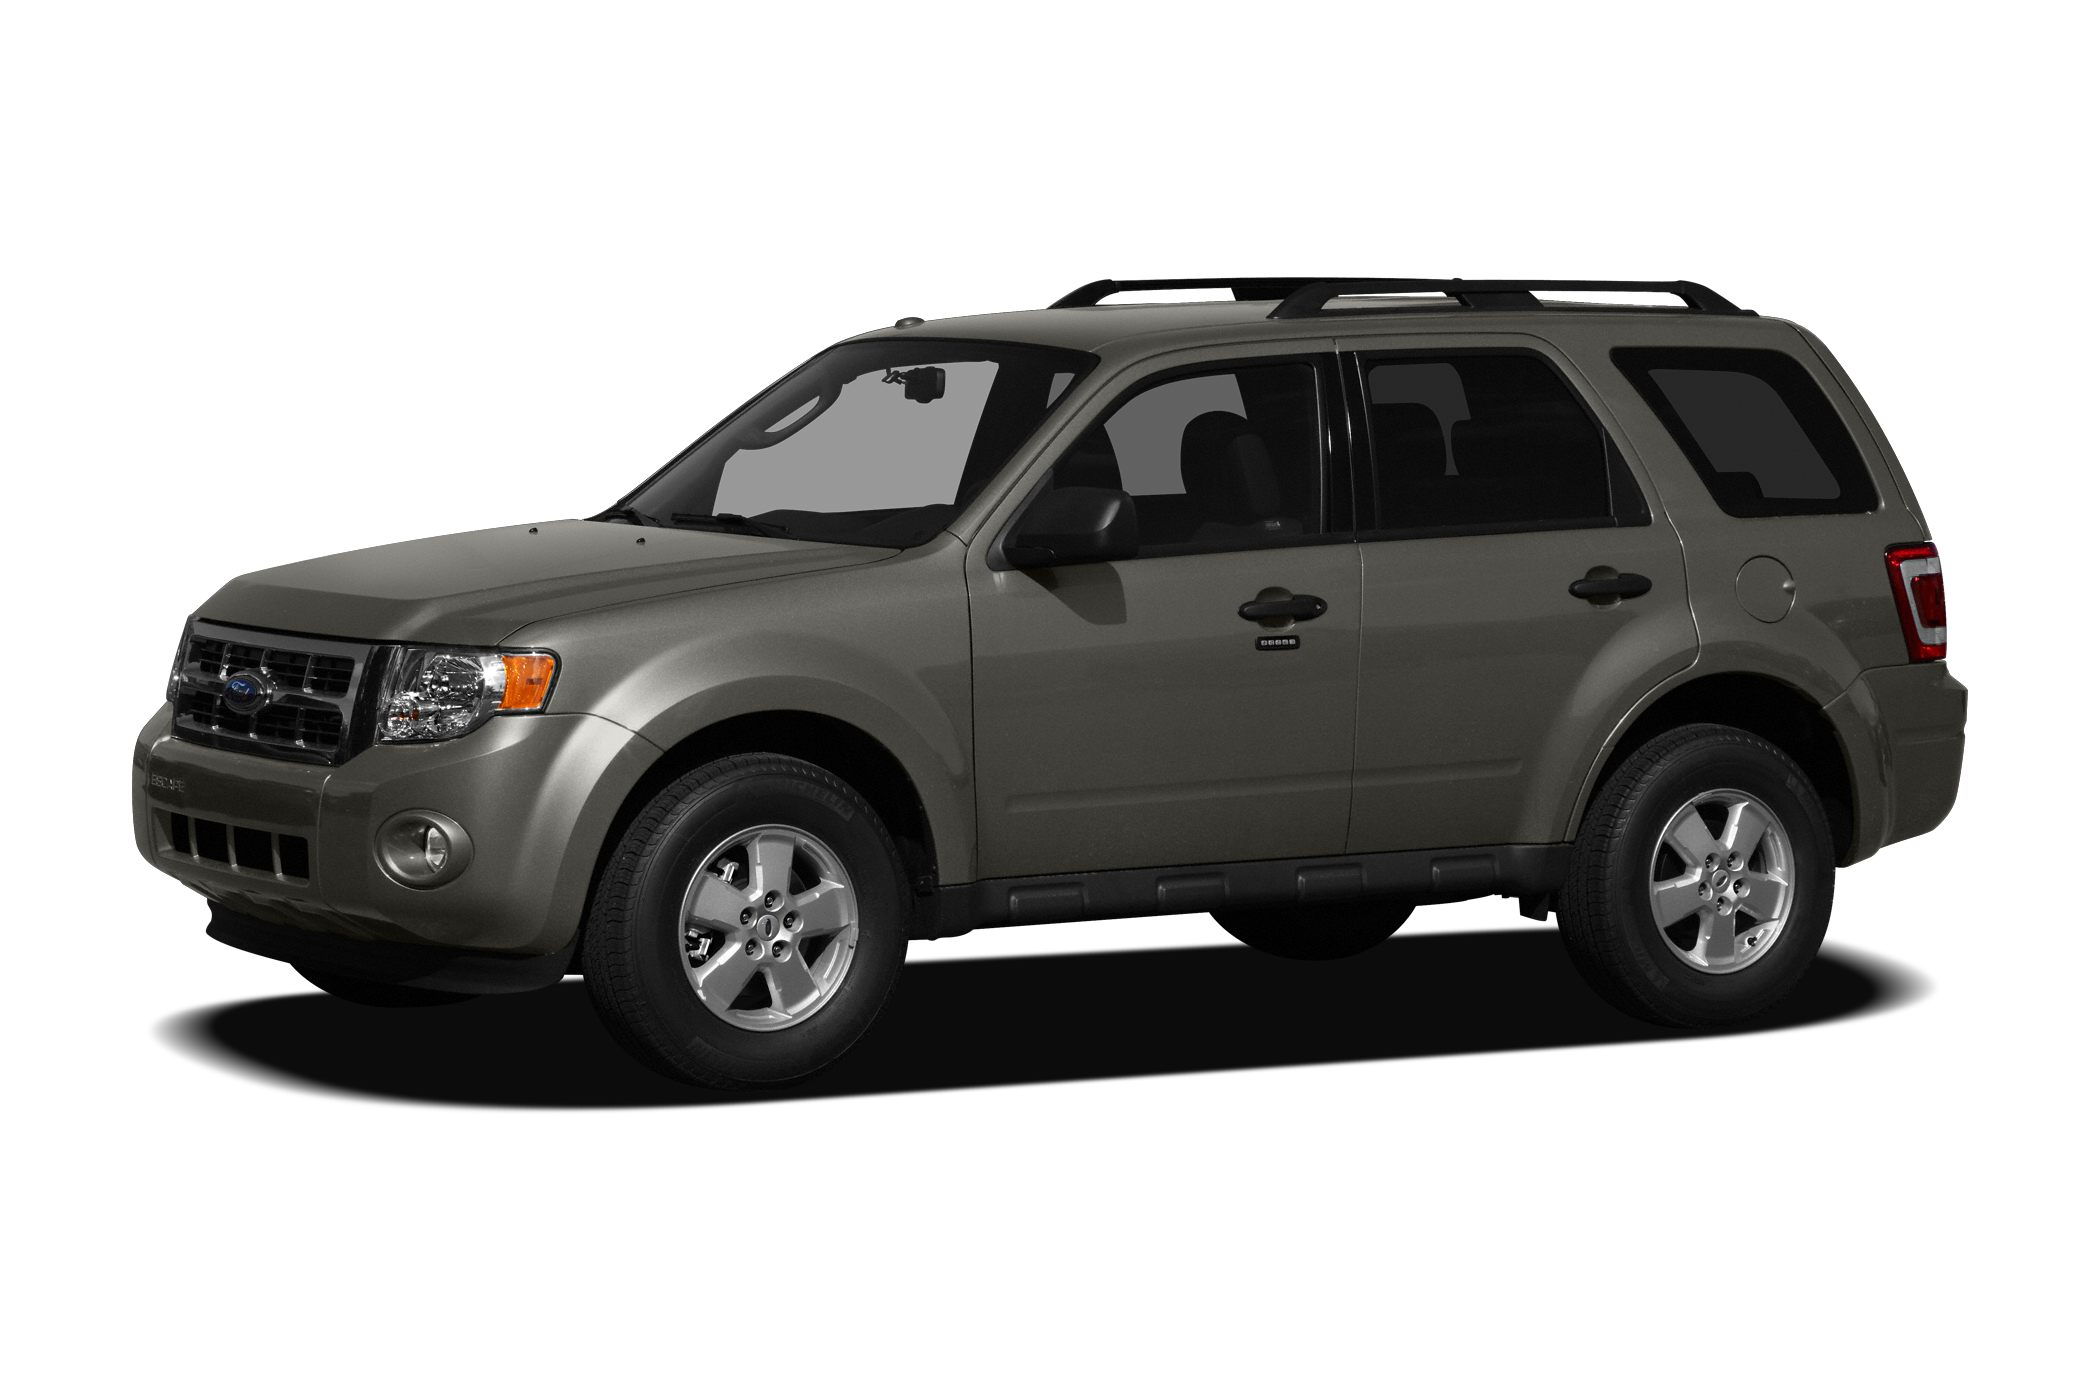 2010 Ford Escape XLT SUV for sale in Massillon for $0 with 86,521 miles